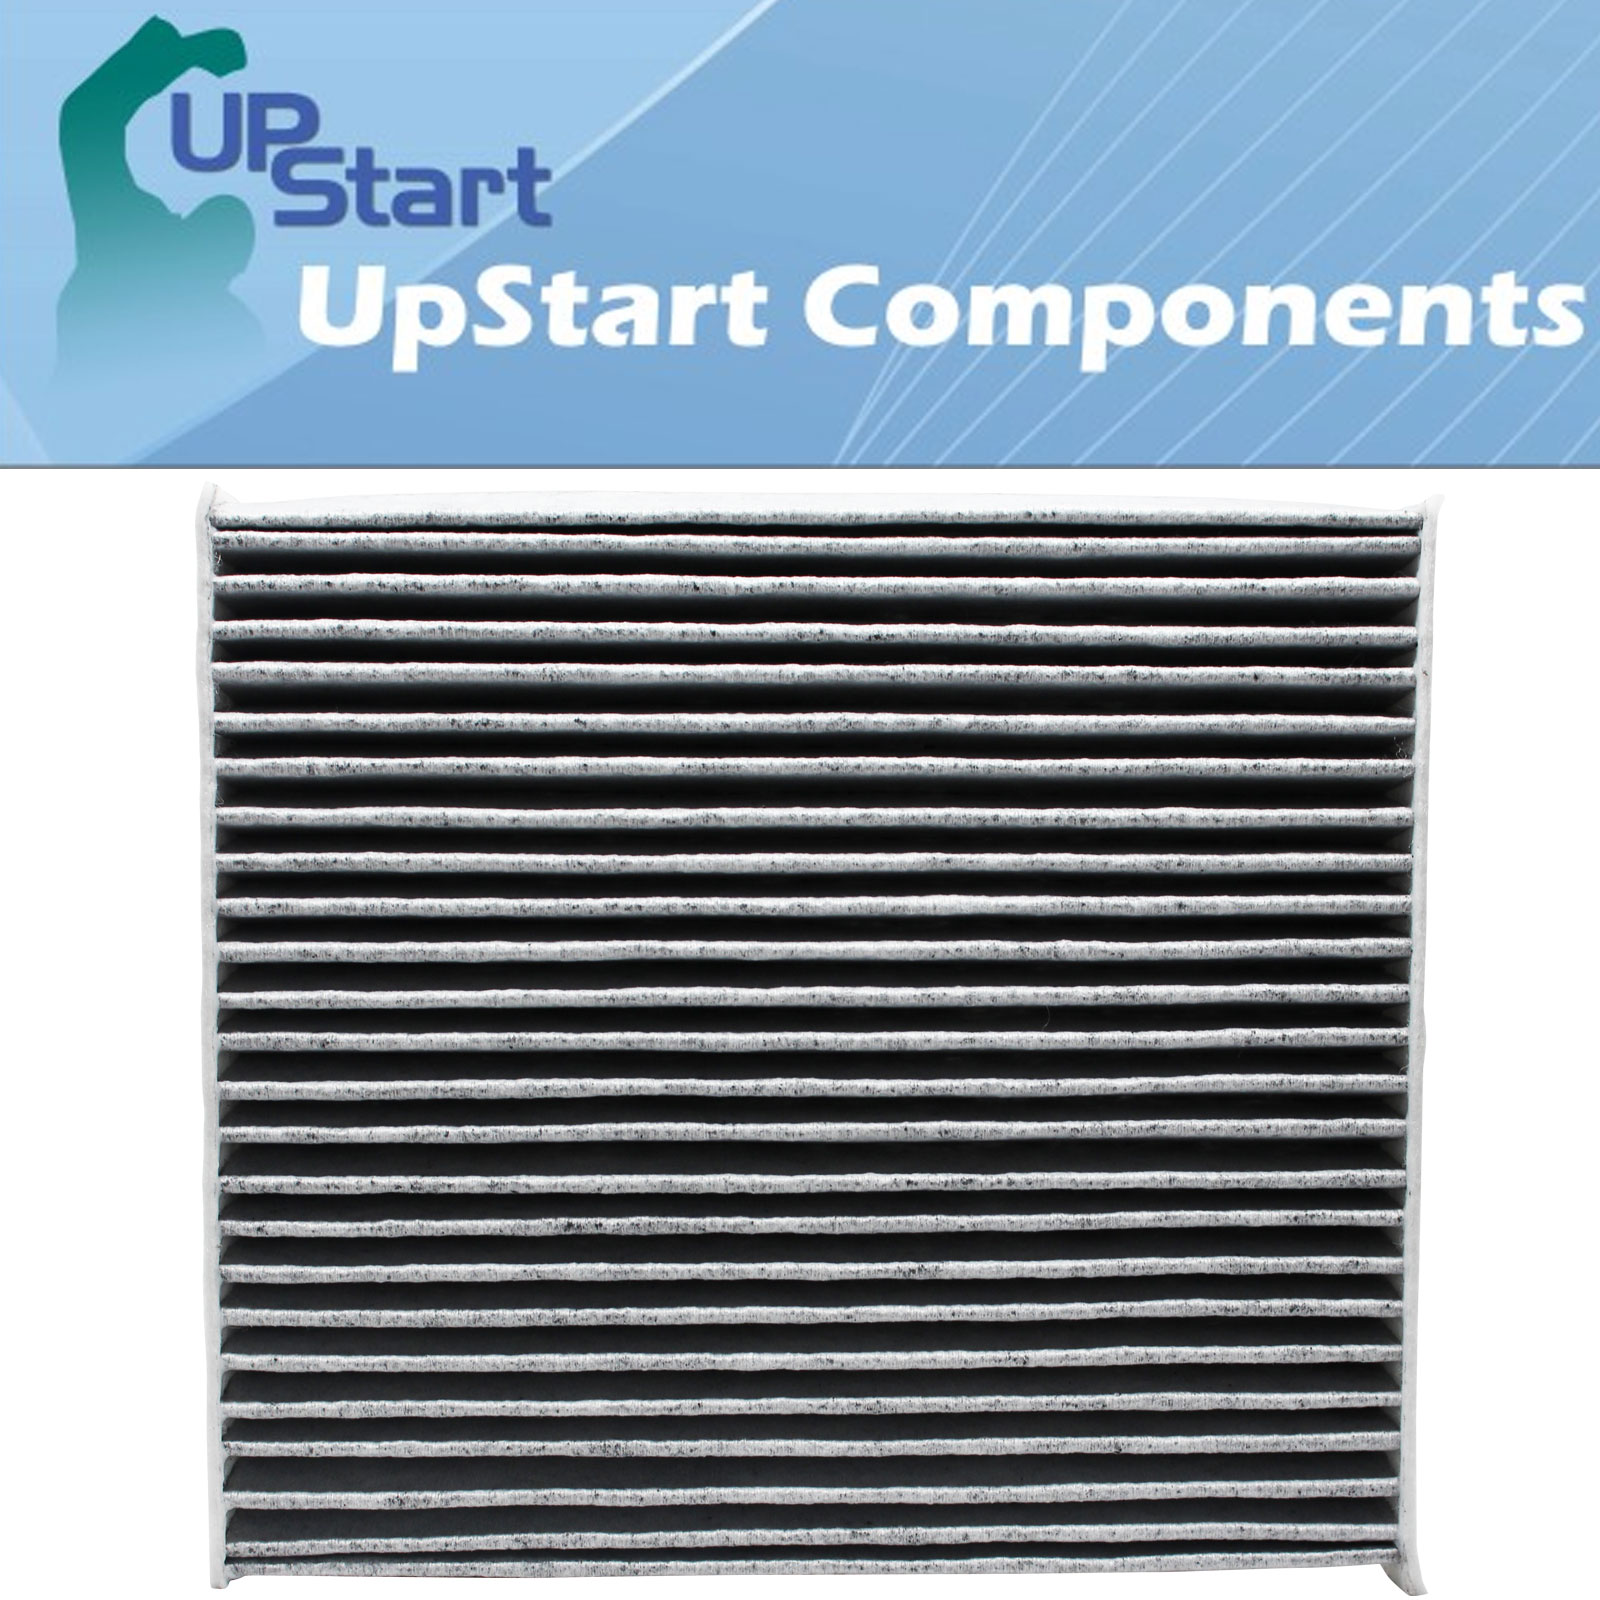 4-Pack Replacement Cabin Air Filter for 2007 Lexus GS 430 V8 4.3L 4293cc Car/Automotive - Activated Carbon, ACF-10285 - image 3 of 4